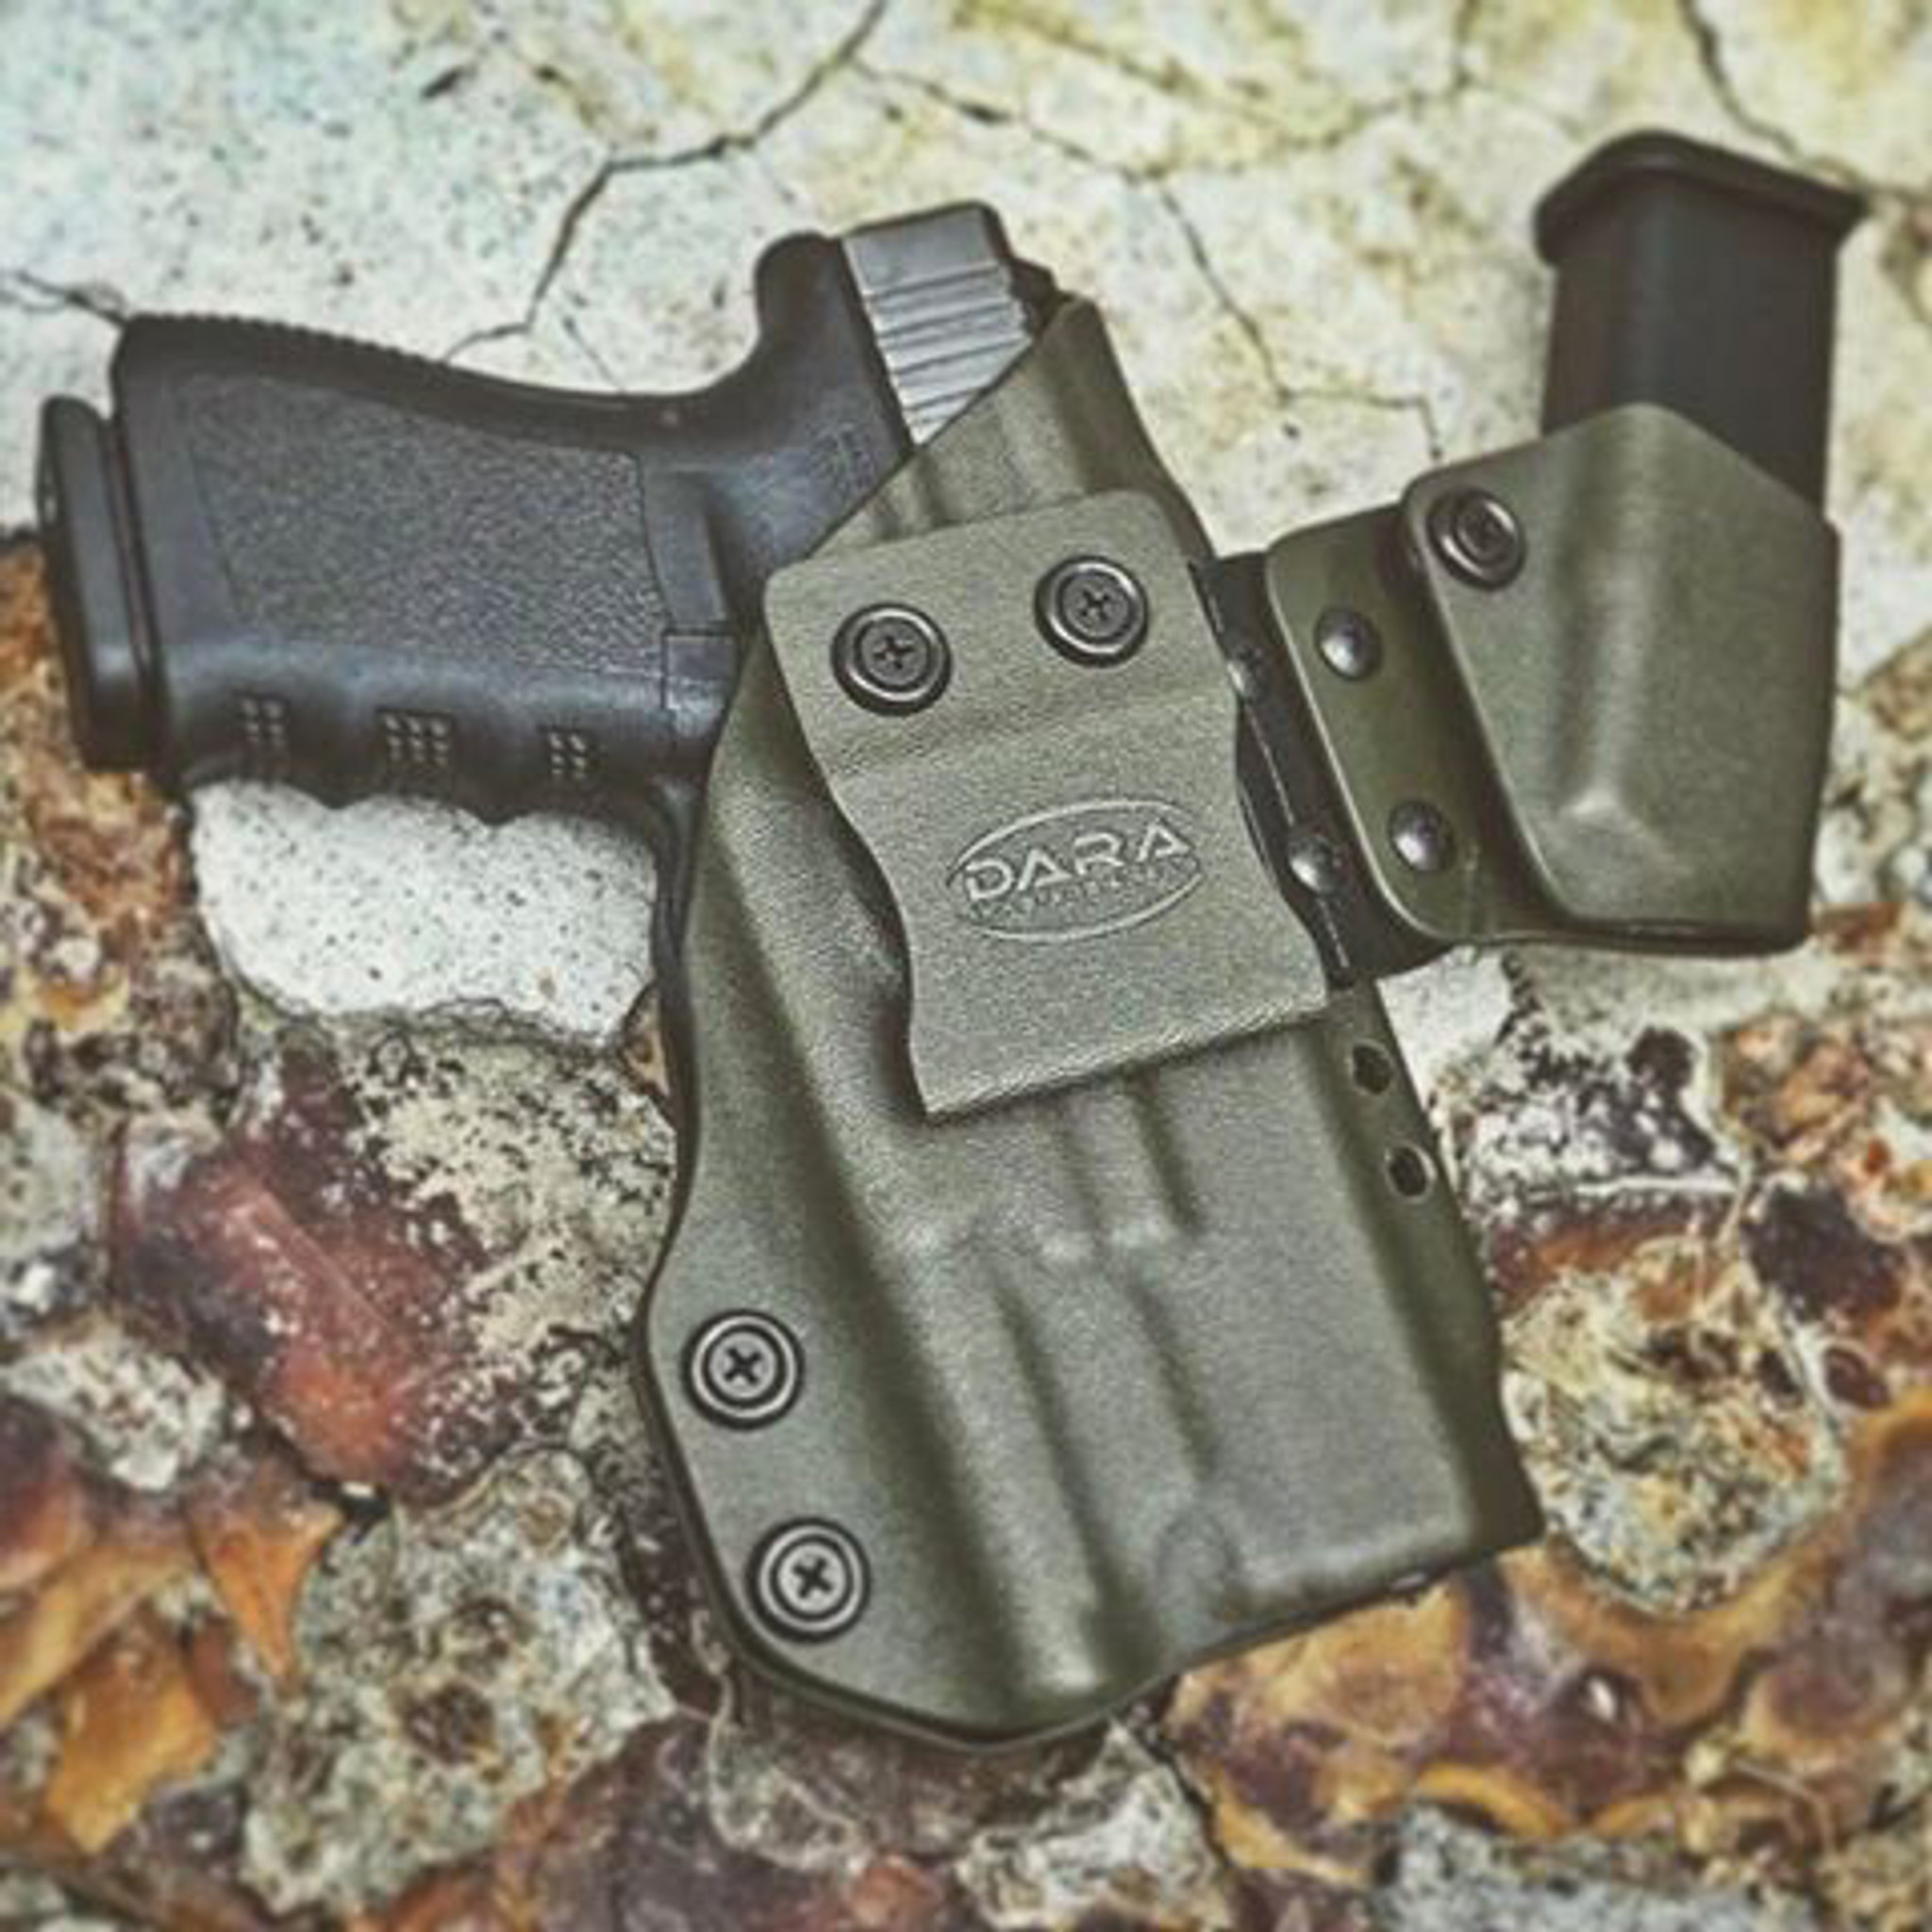 Modular Appendix Rigs: Glock 26/27/33 & M&P Shield 9/40